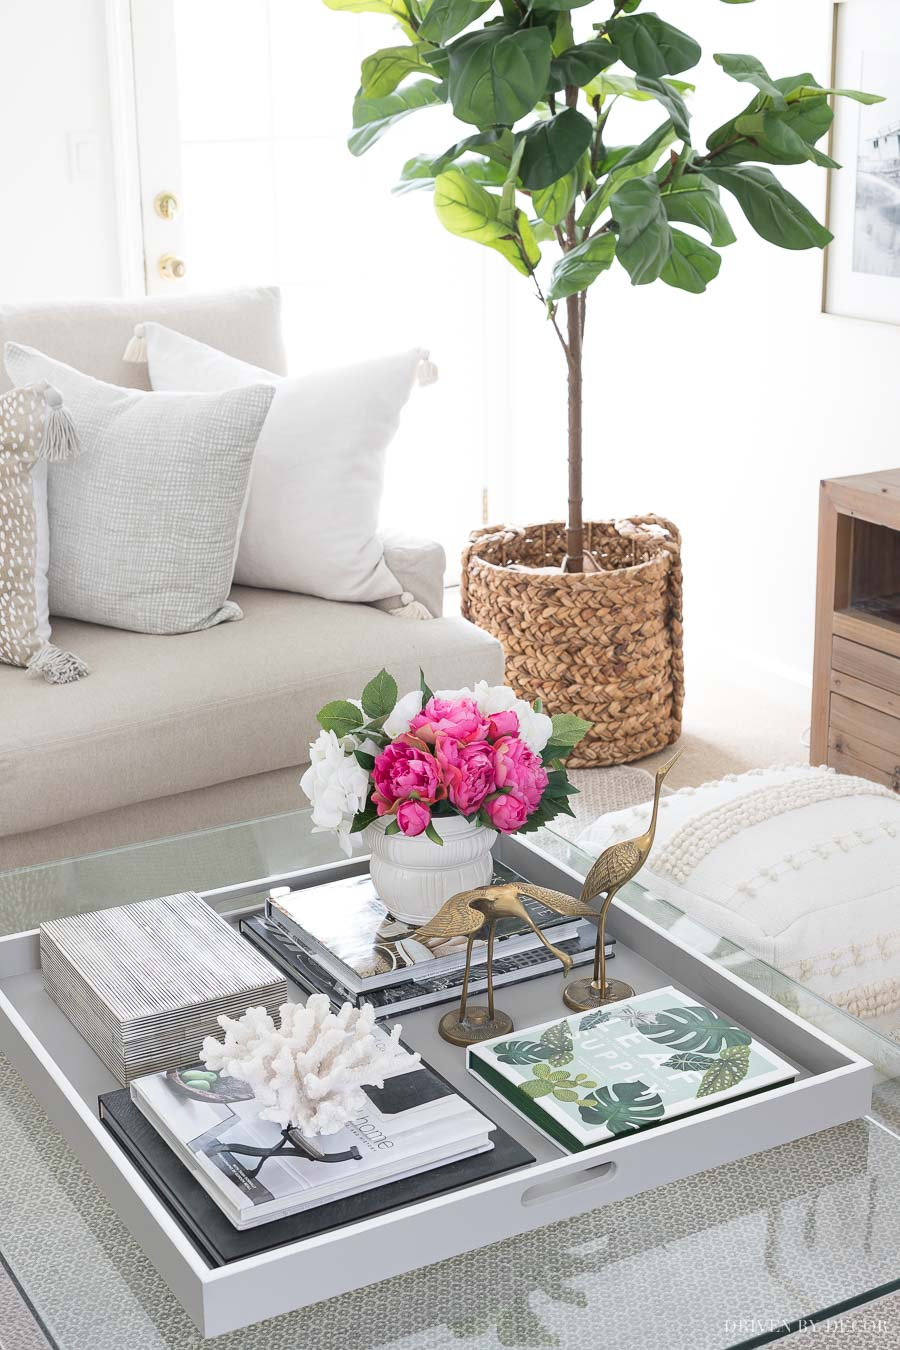 Great Post On Coffee Table Decor With Tips For Styling Your Own